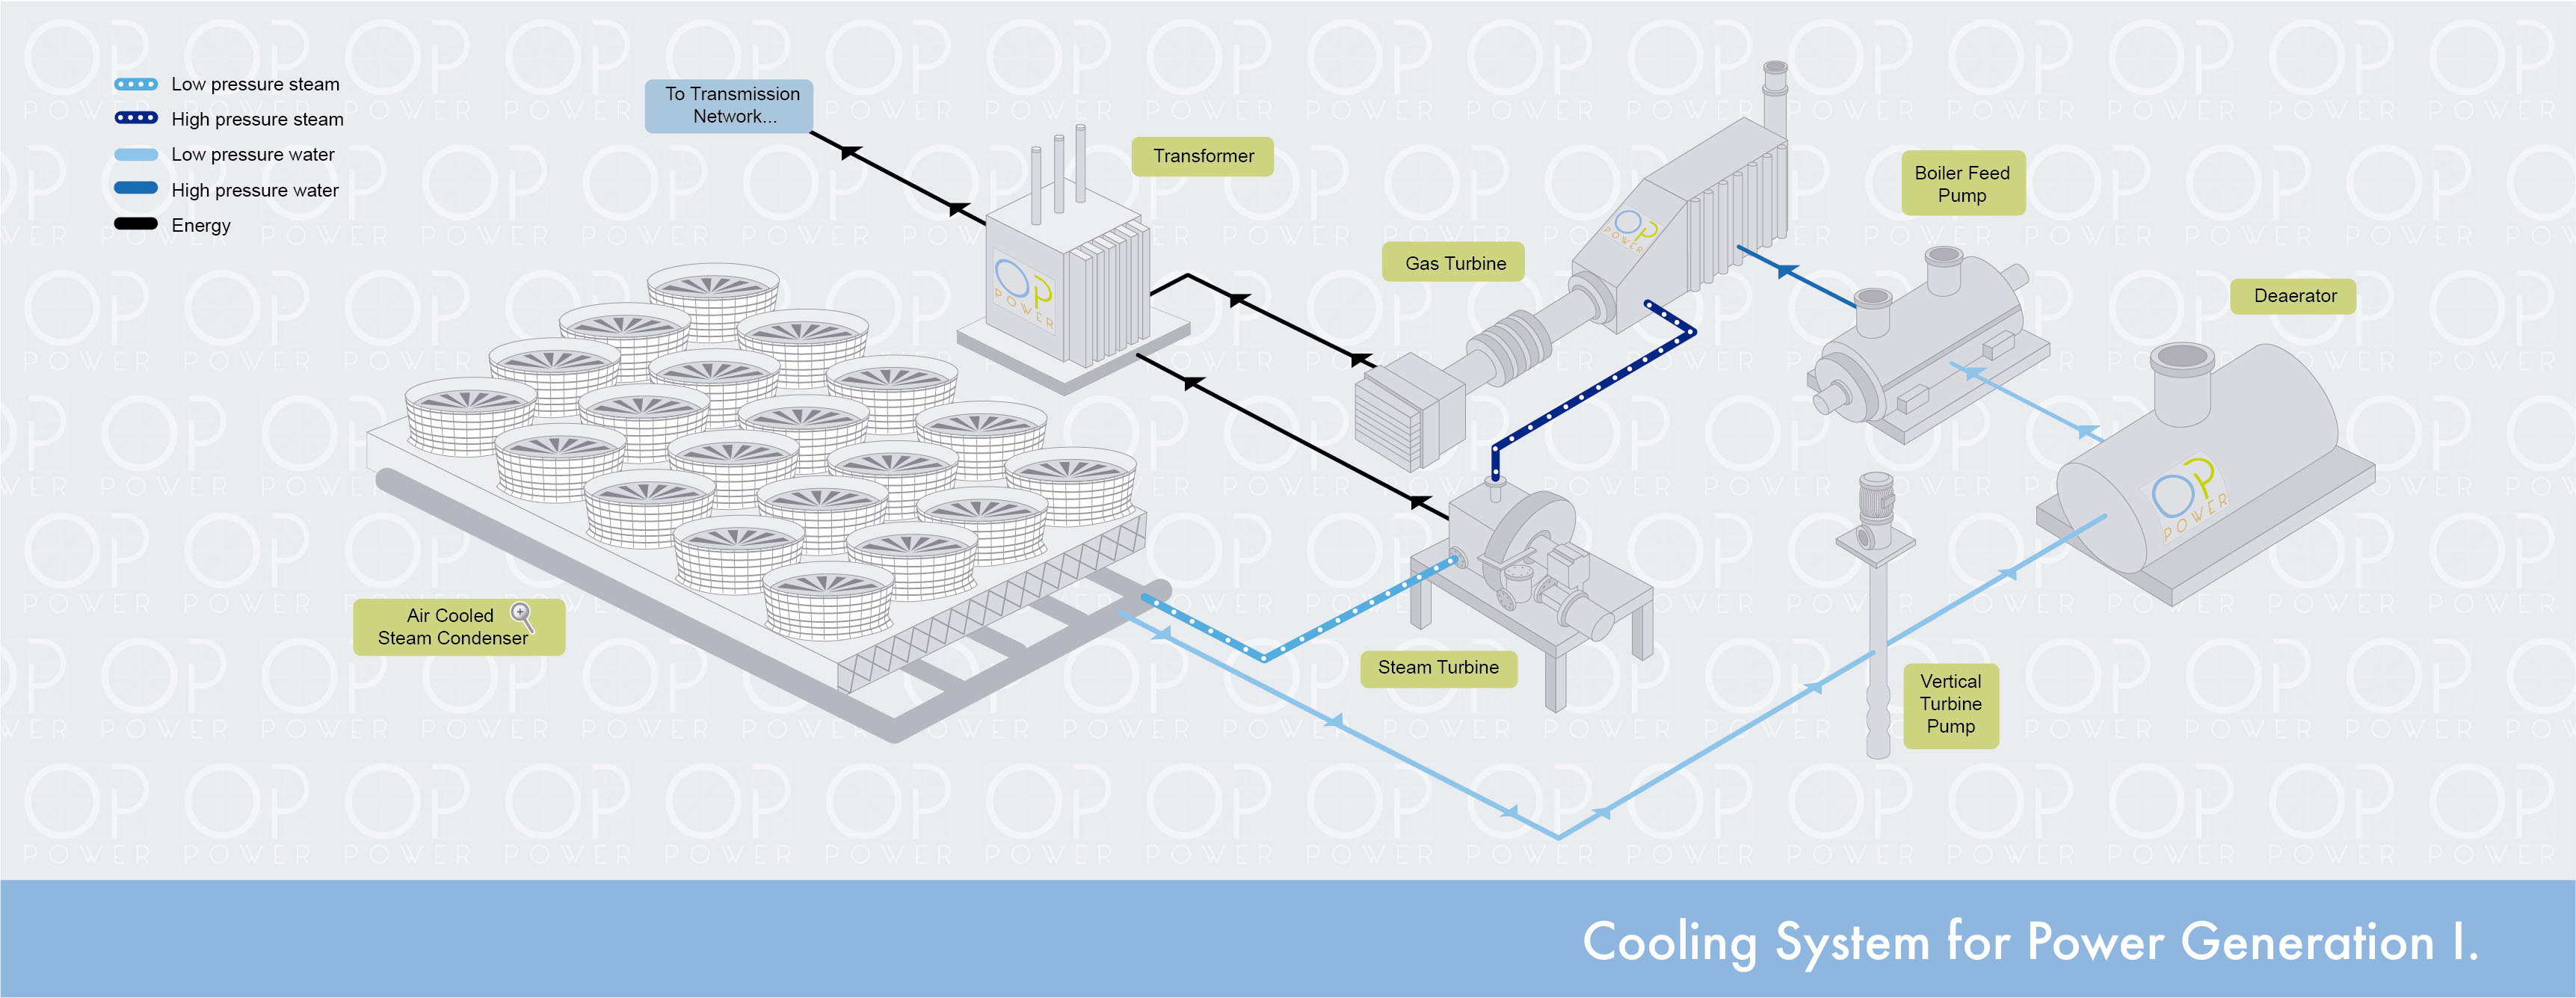 Cooling System Power Generation I